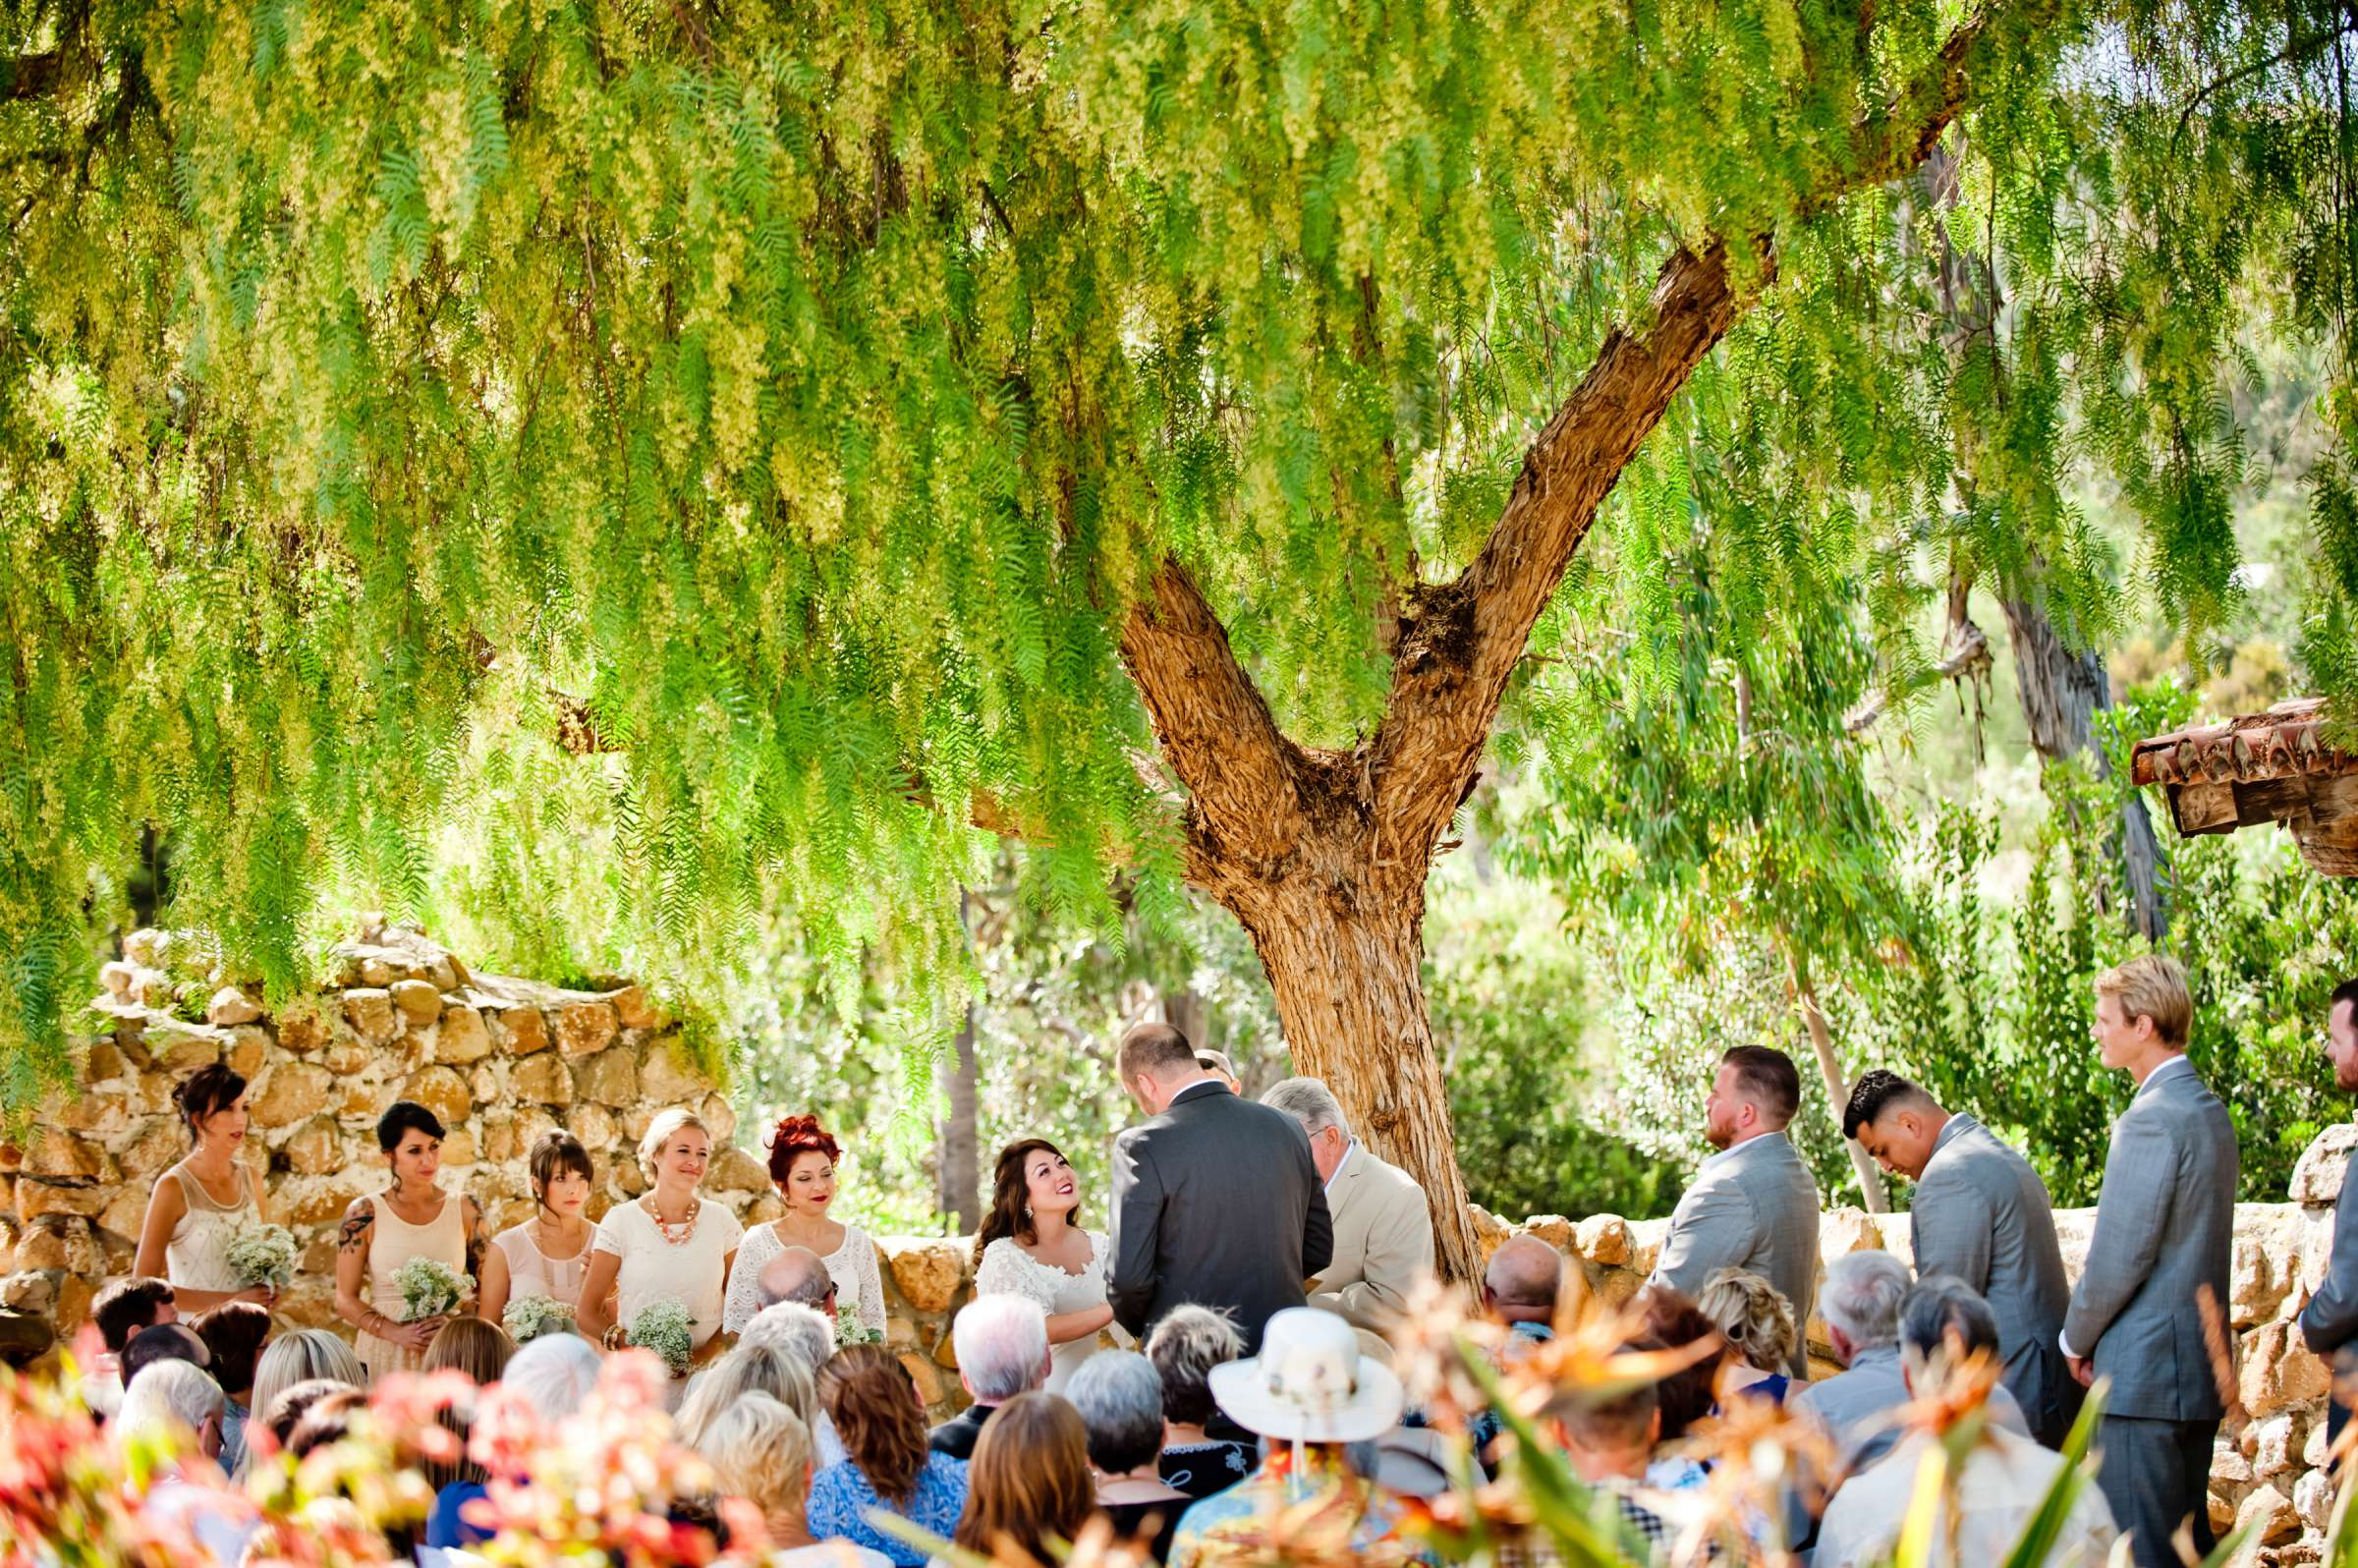 Leo Carrillo Ranch Wedding coordinated by Weddings by Lisa Nicole, Bethany and Aaron Wedding Photo #9 by True Photography